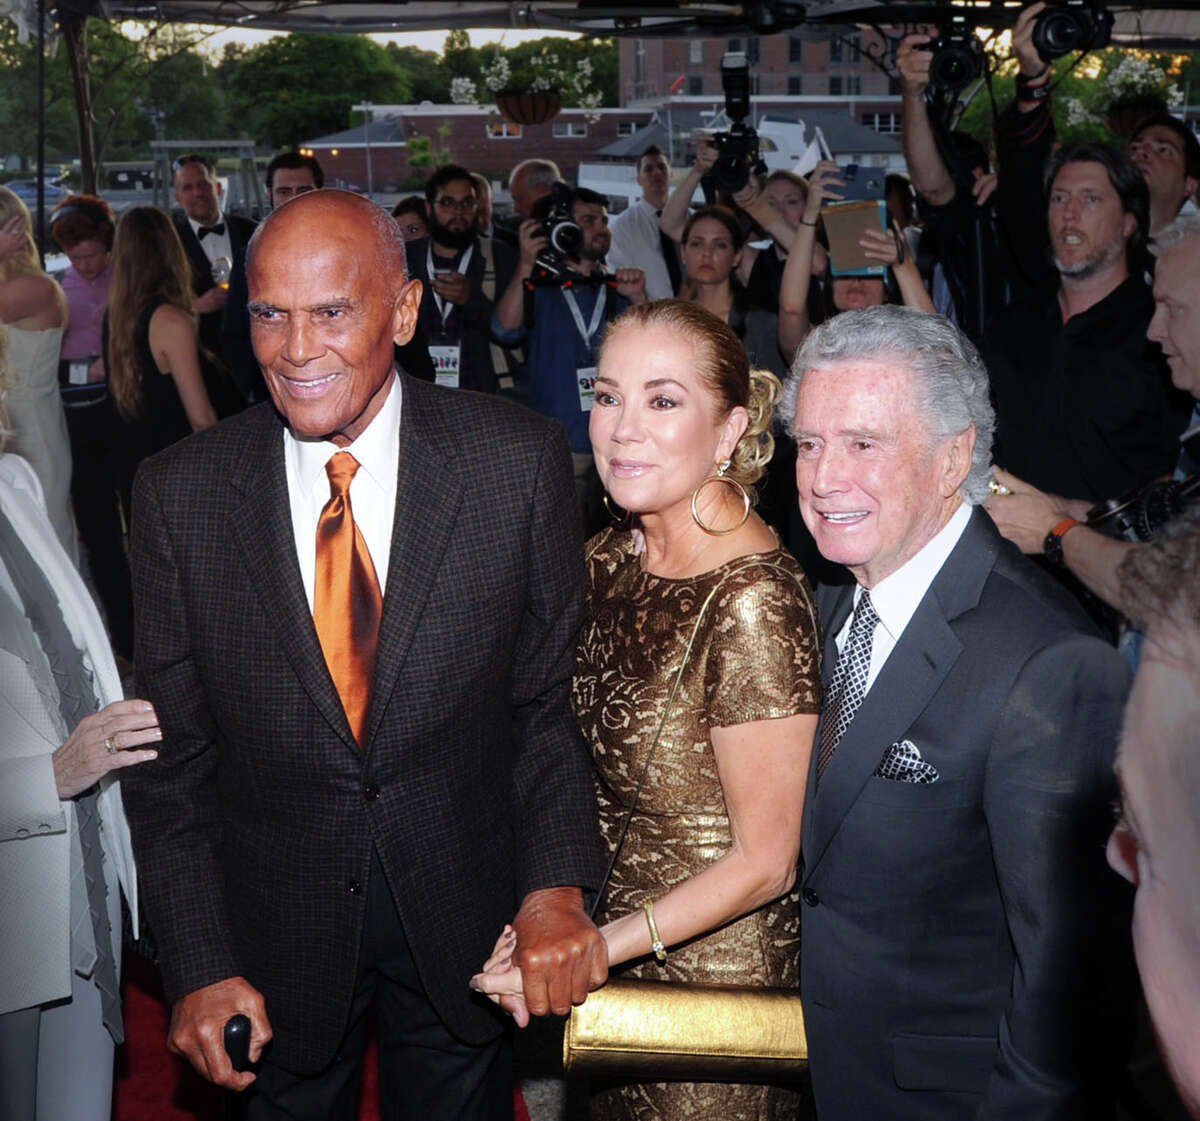 Honoree Harry Belafonte, left, with Kathie Lee Gifford, center, and Regis Philbin, right during the Greenwich International Film Festival Gala honoring Belafonte for his philanthropic work, particularly with UNICEF, at L'escale Restaurant & Bar in Greenwich, Conn., Saturday night, June 6, 2015. Gifford and Philbin were Master of Ceremonies for the gala.